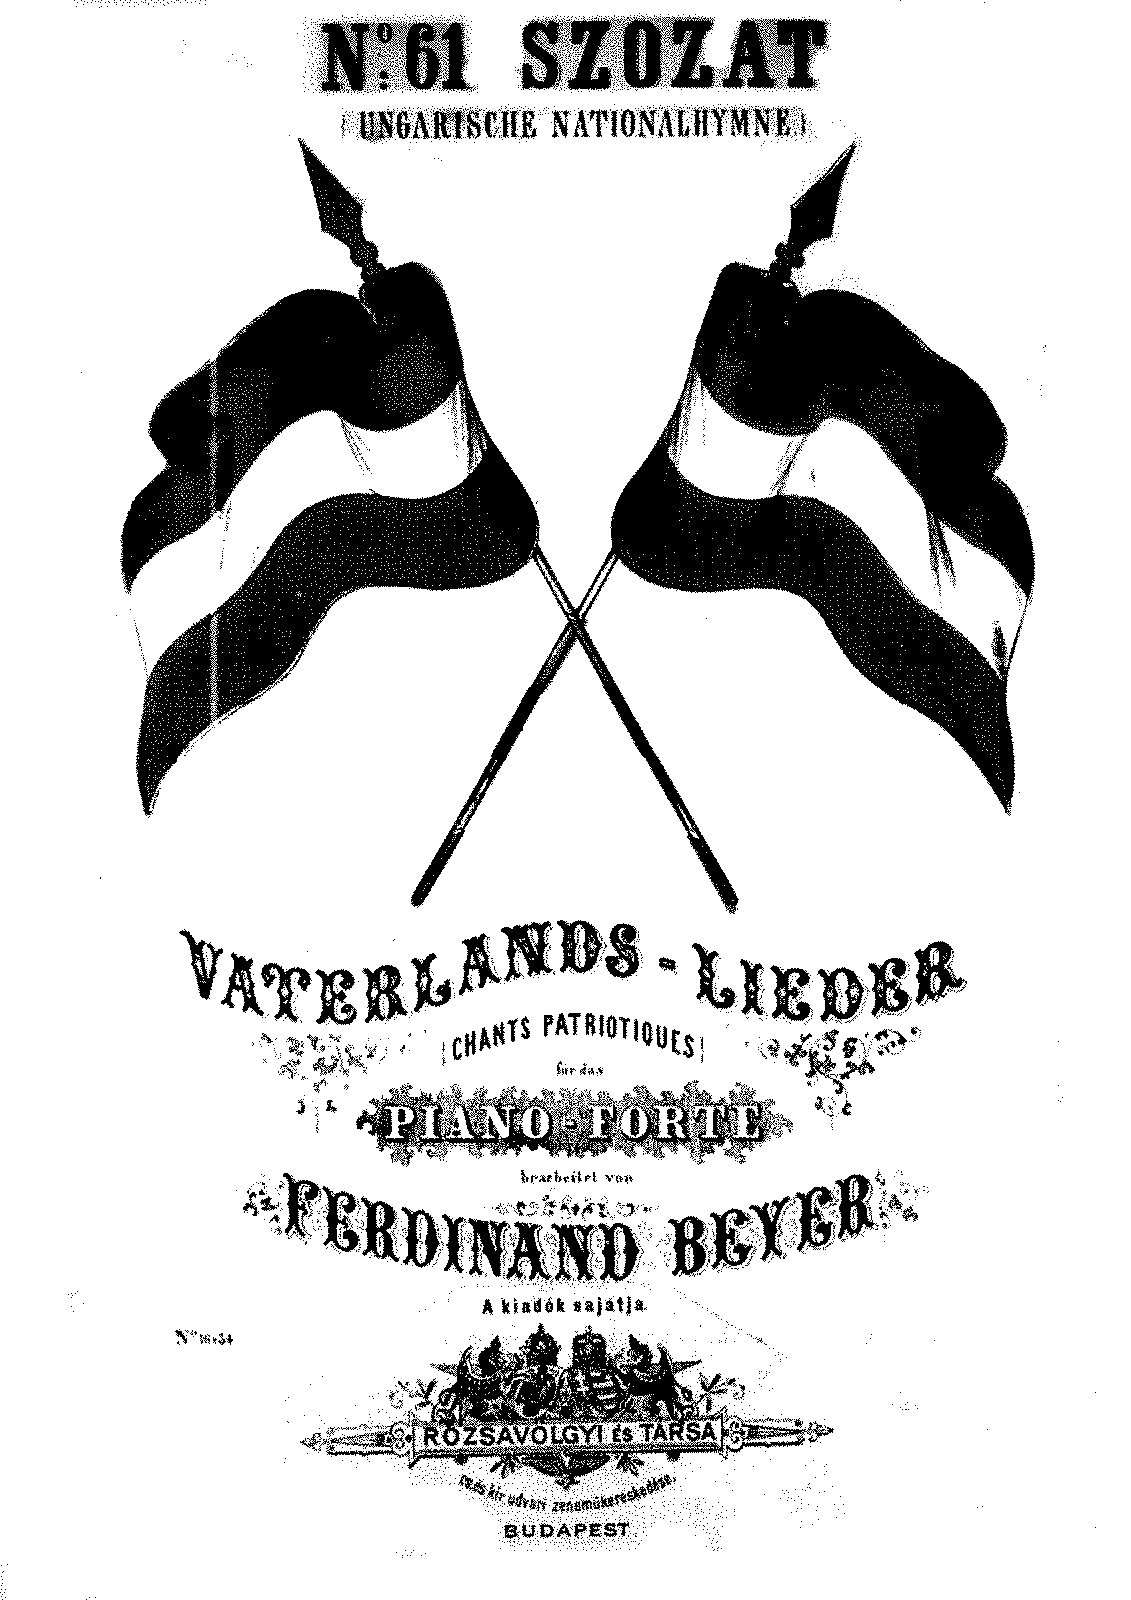 PMLP215418-Beyer - Vaterlands-Lieder no 61 Ungarische Nationalhymne.pdf